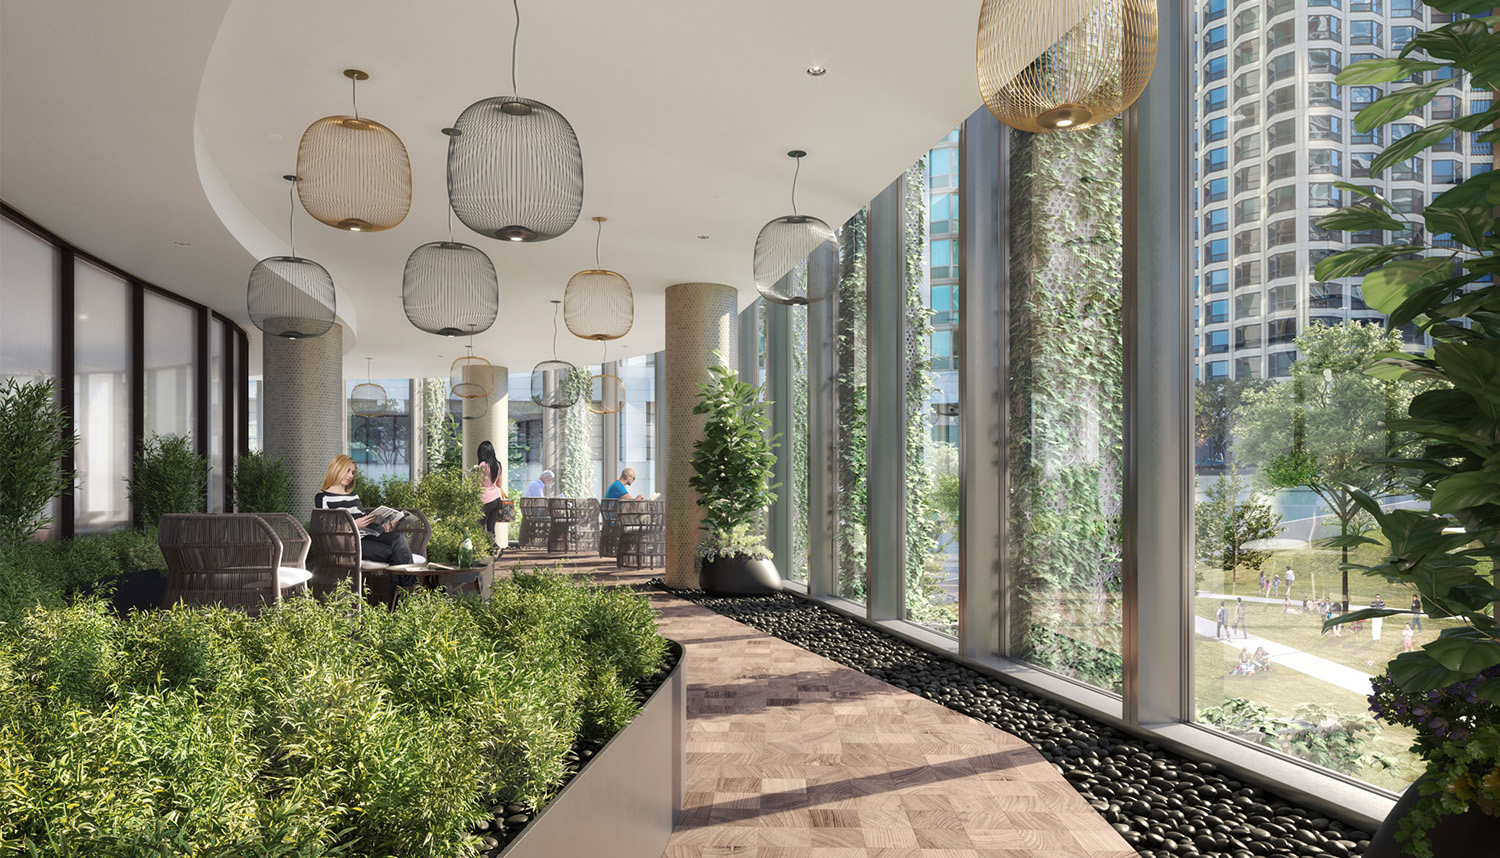 Interior Amenity Space at Cirrus. Rendering by bKL Architecture LLC